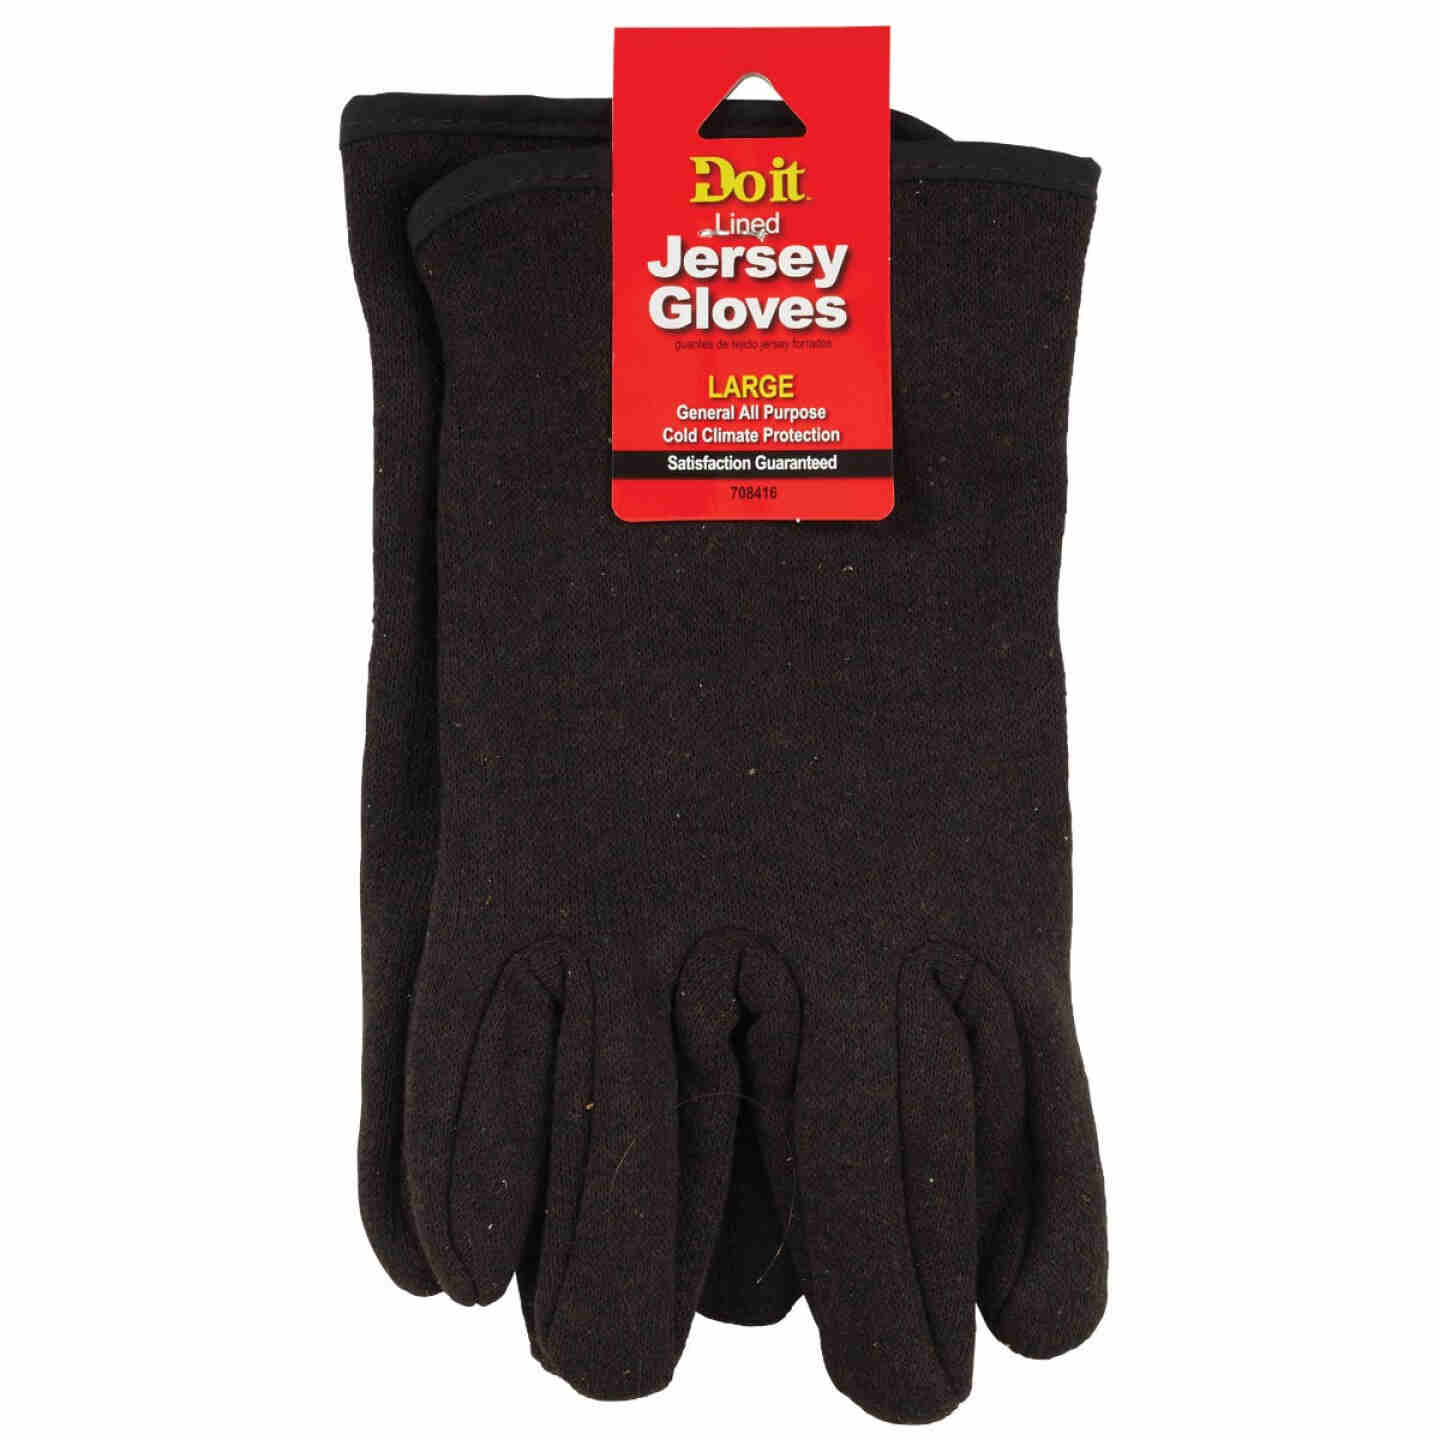 Do it Men's Large Lined Jersey Work Glove Image 3